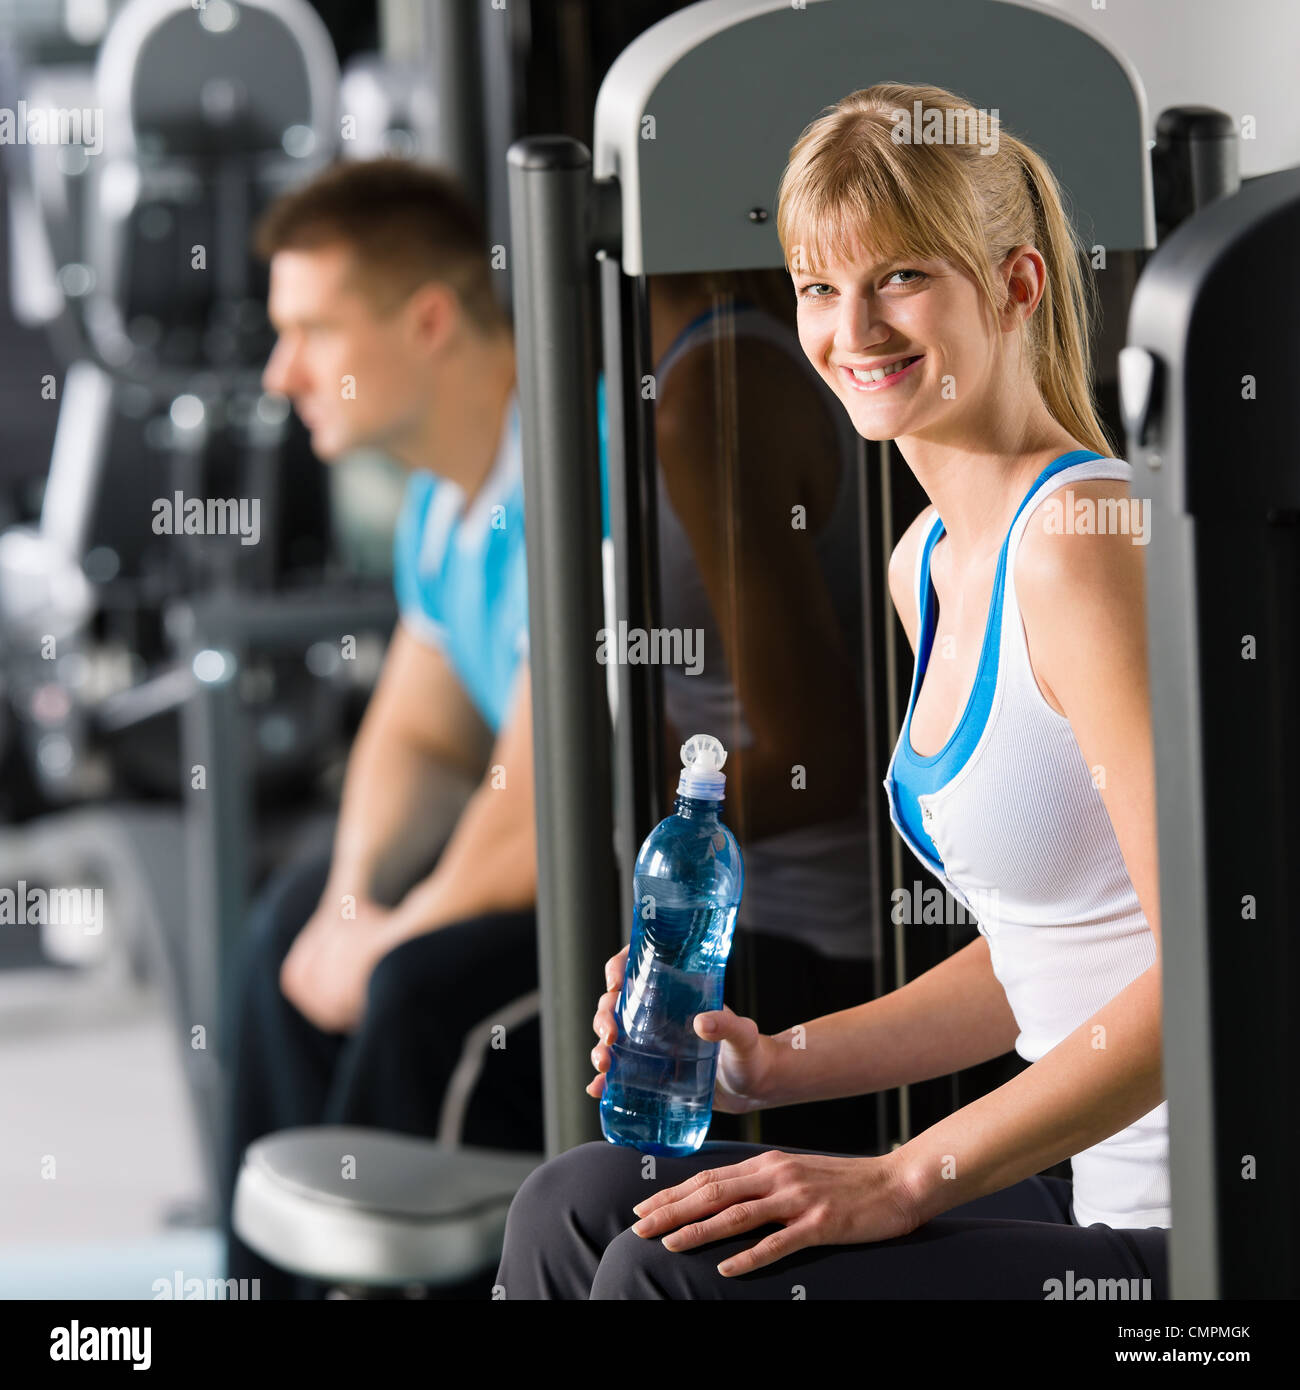 At the fitness center young woman relax on exercise machine - Stock Image